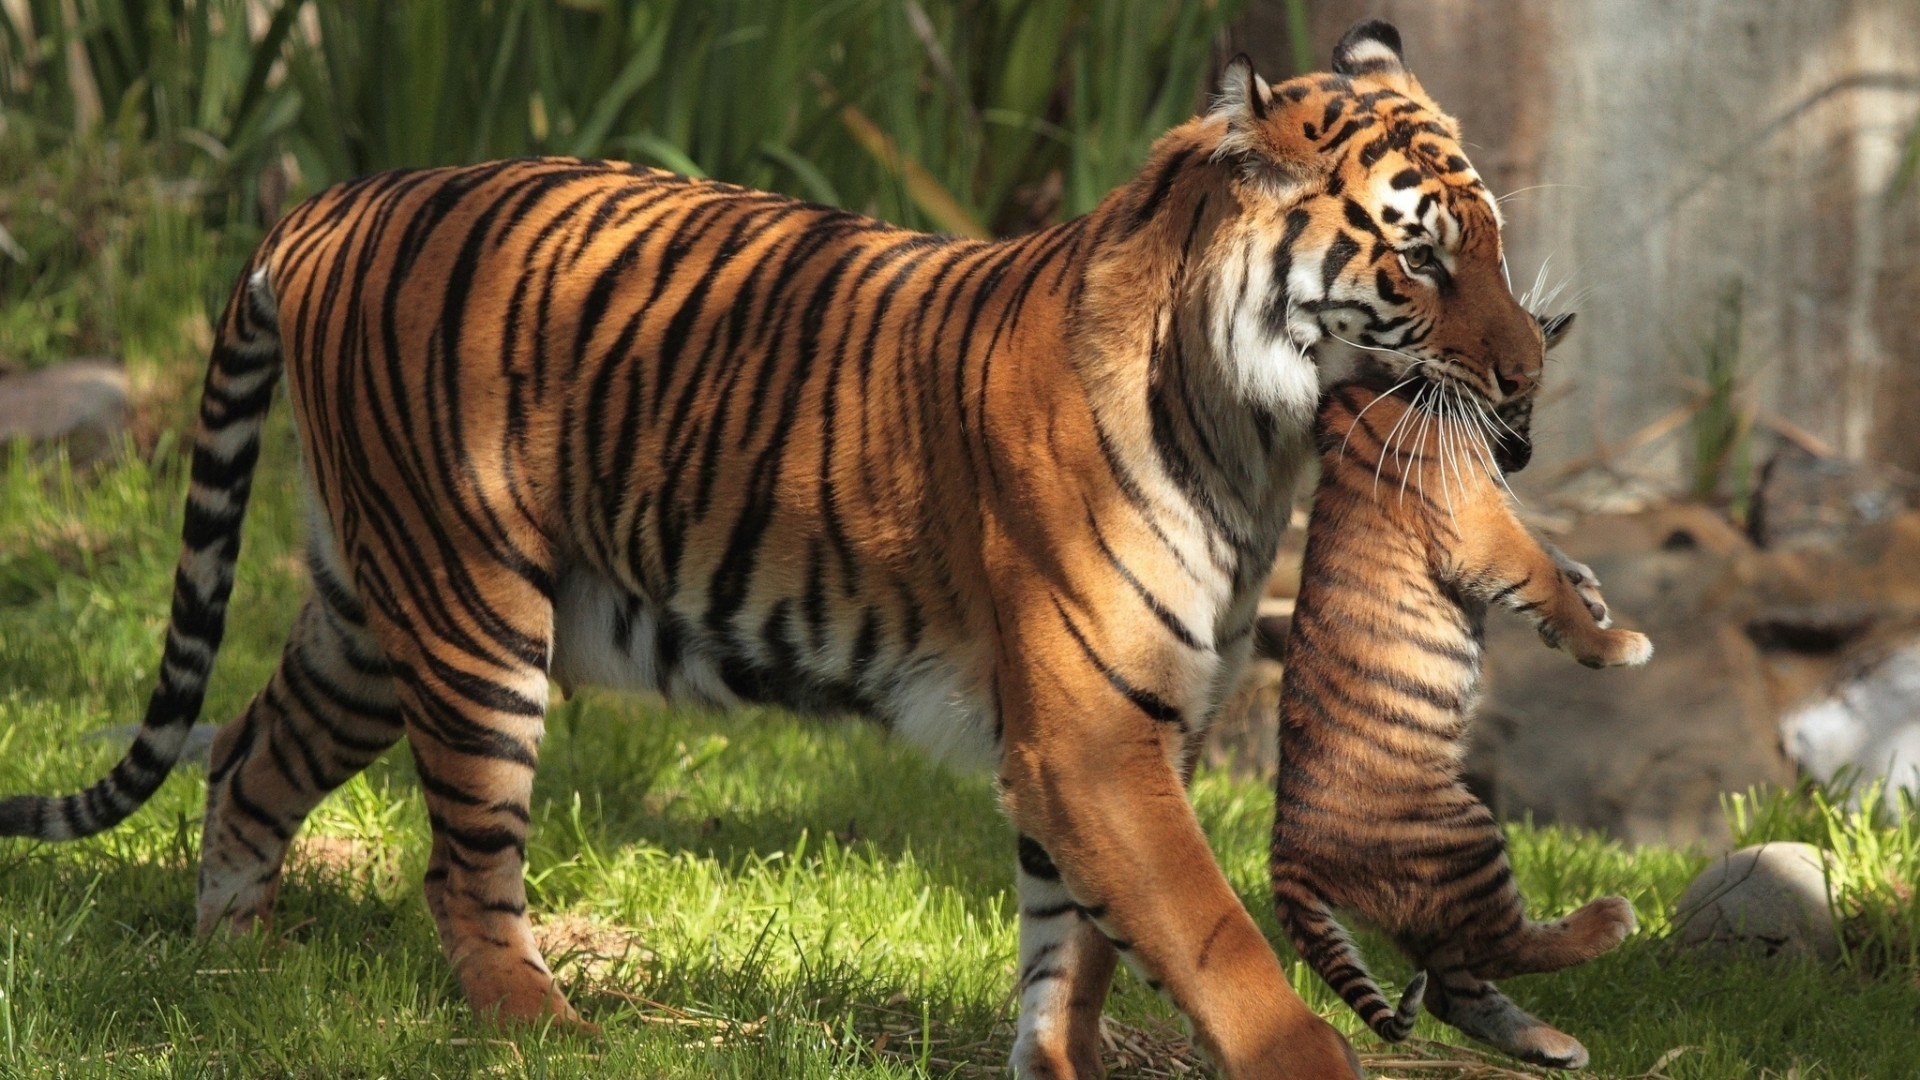 Fun Tiger Facts for Kids  Interesting Facts about Tigers